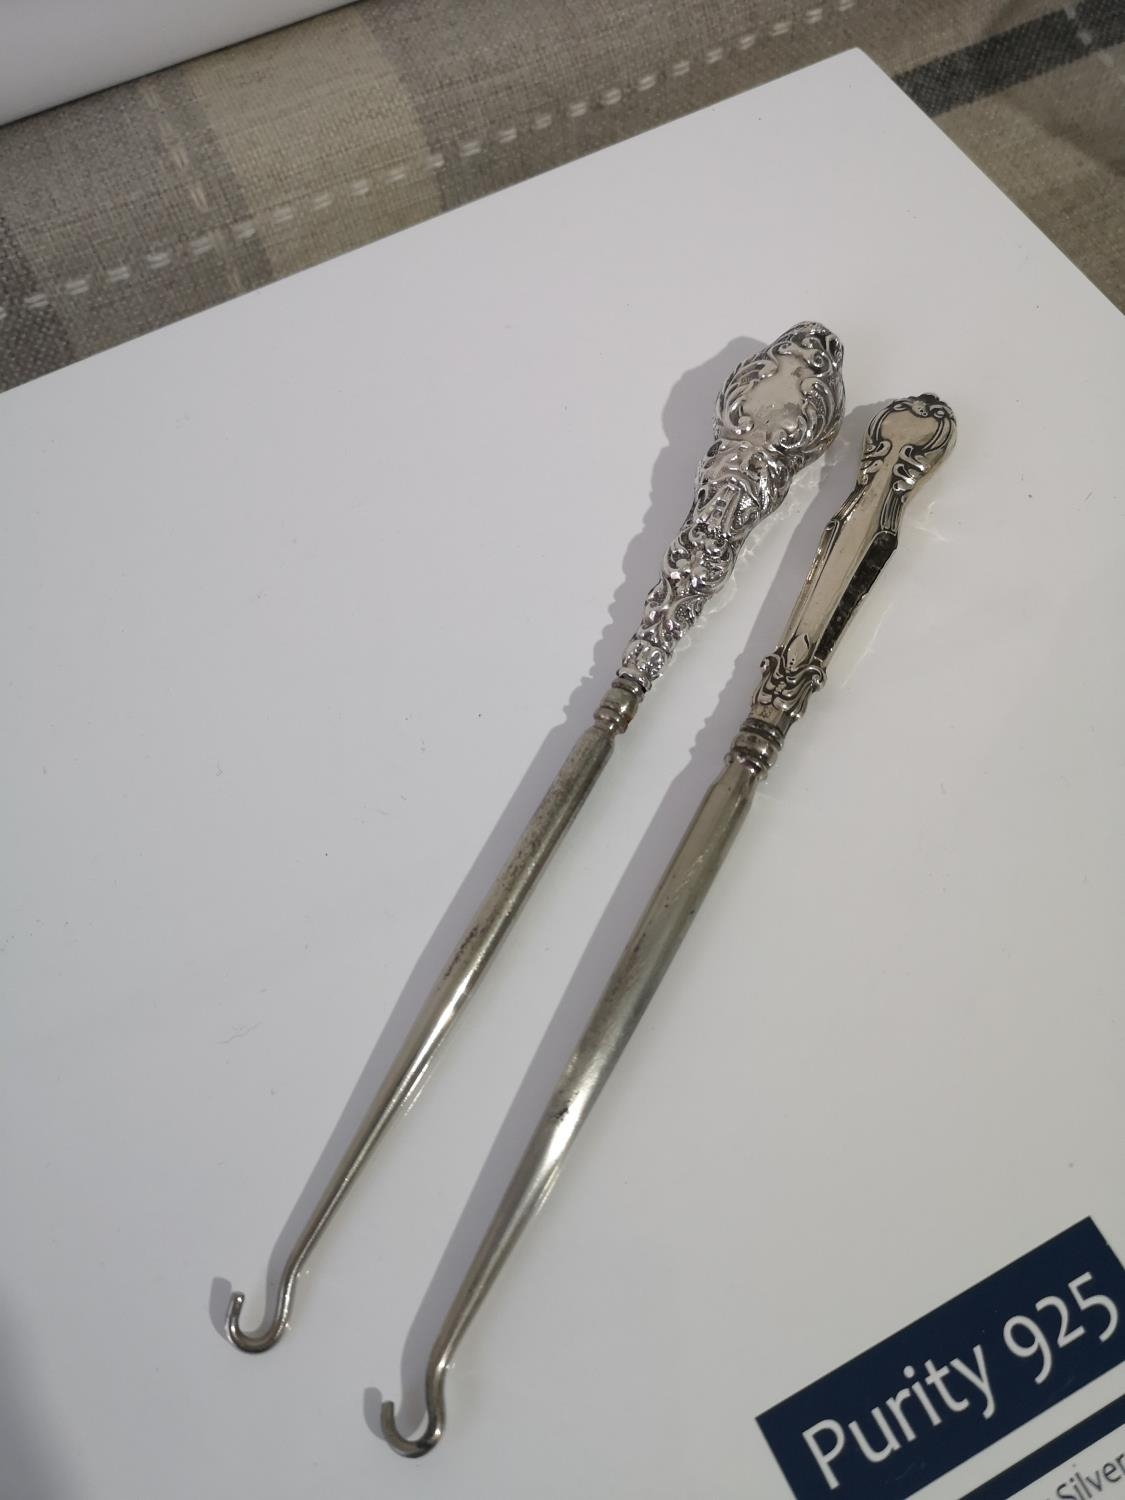 TWO SILVER HANDLE BUTTON HOOKS. SHEFFIELD ISAAC ELLIS AND SONS 1910 & BIRMINGHAM G & C L DATE 1909.